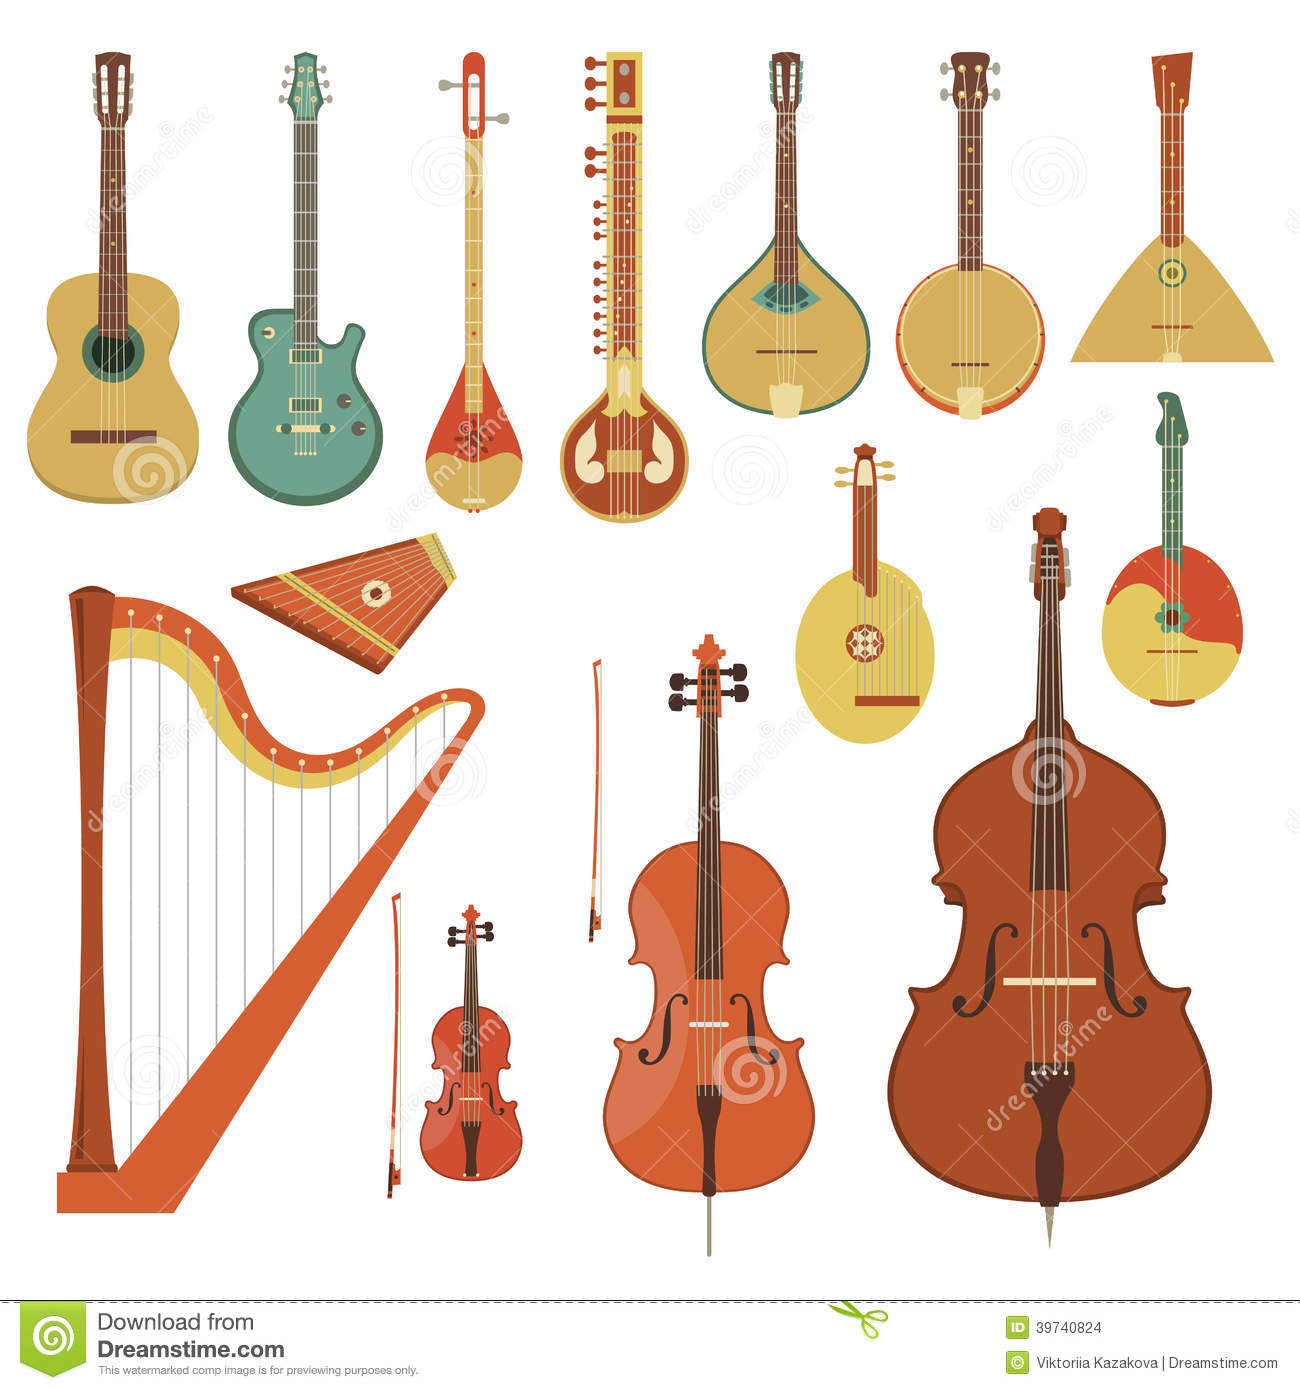 String Instruments Learning Chart (Posters ) J.W. Pepper Sheet Music